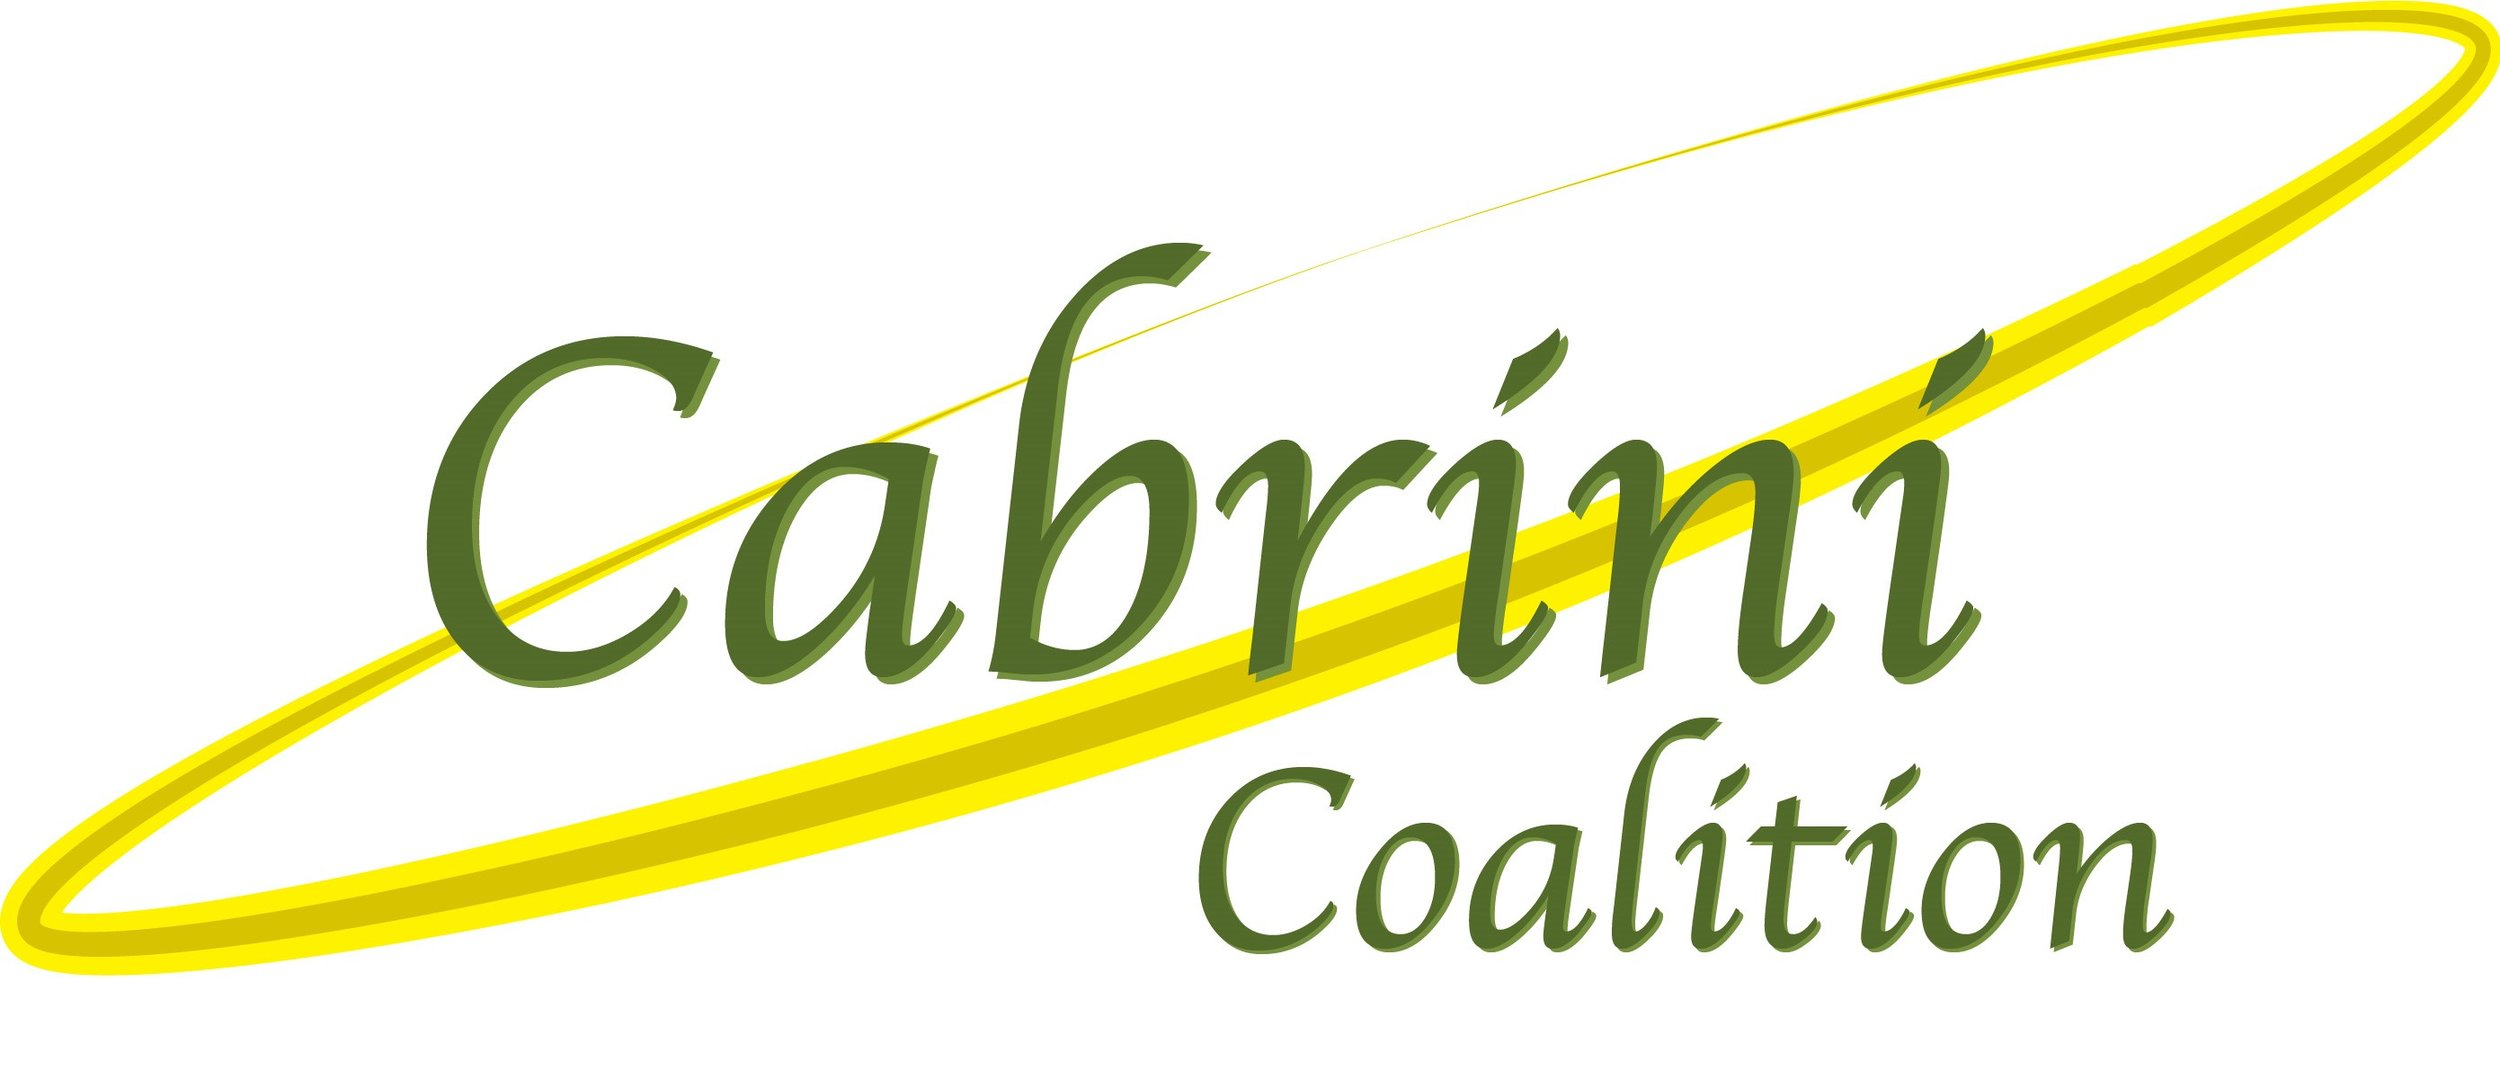 -cabrini-coalition-immigration-outreach-social-justice-ministry-st-francis-de-sales-church-new-york-city.png